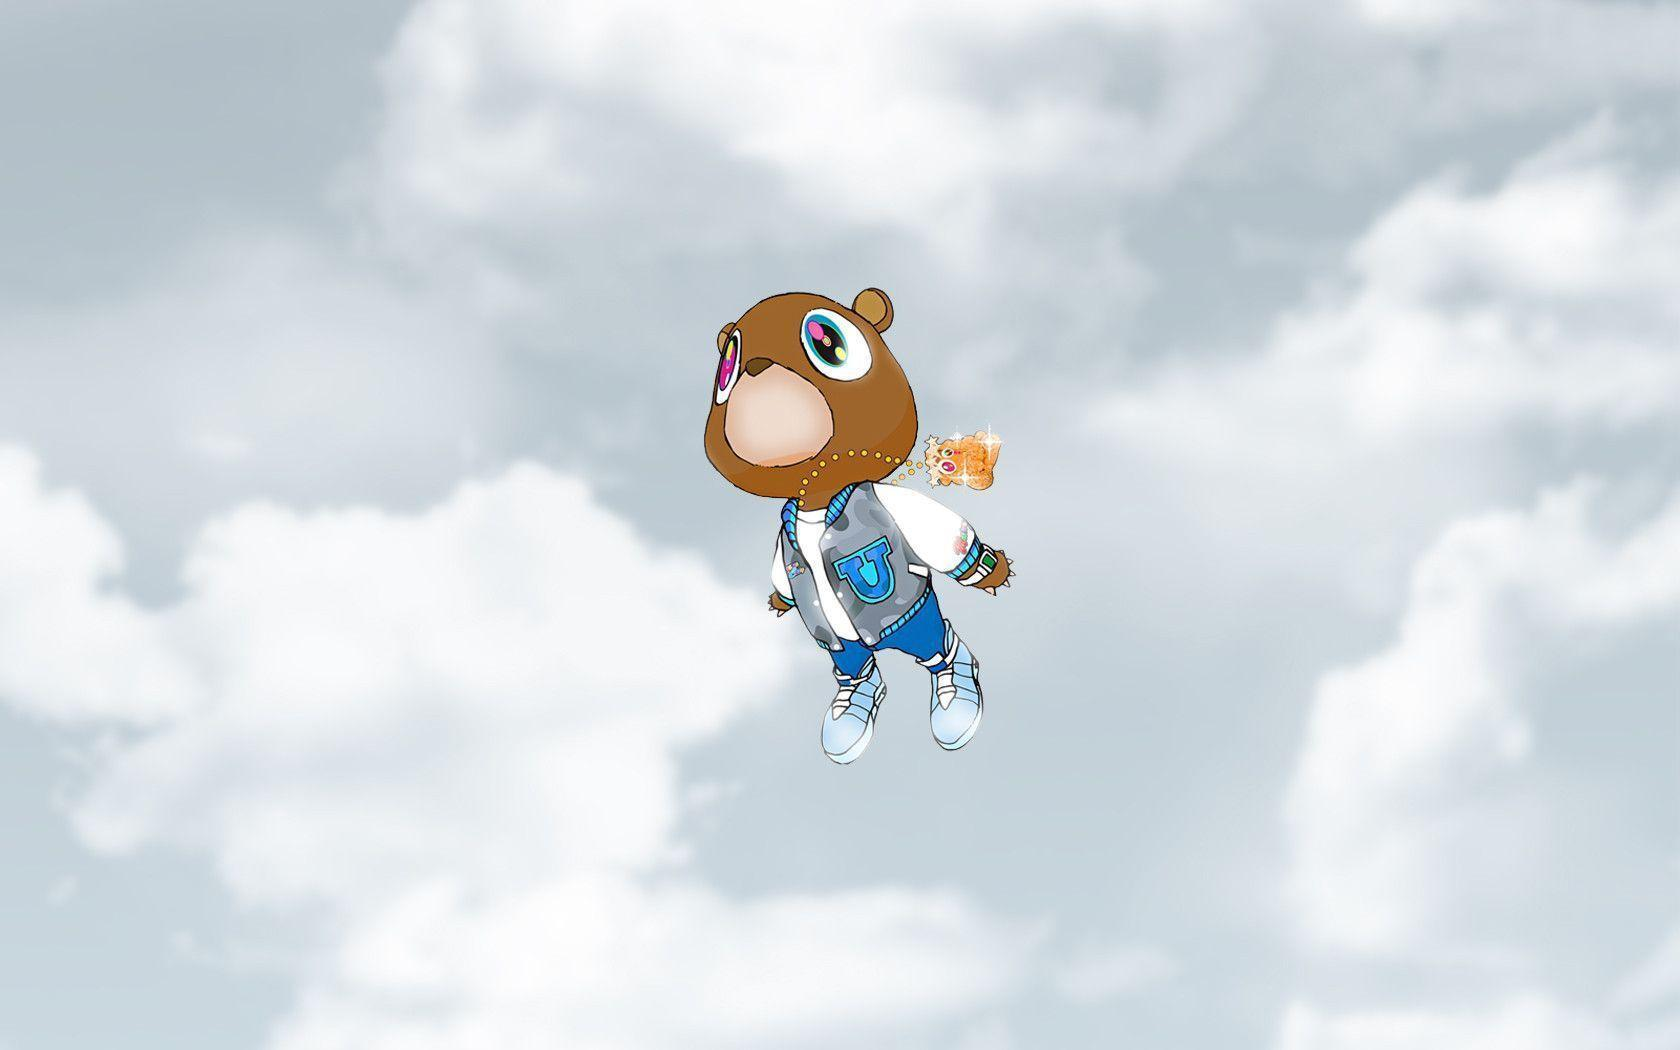 Kanye West Graduation Wallpapers Image & Pictures